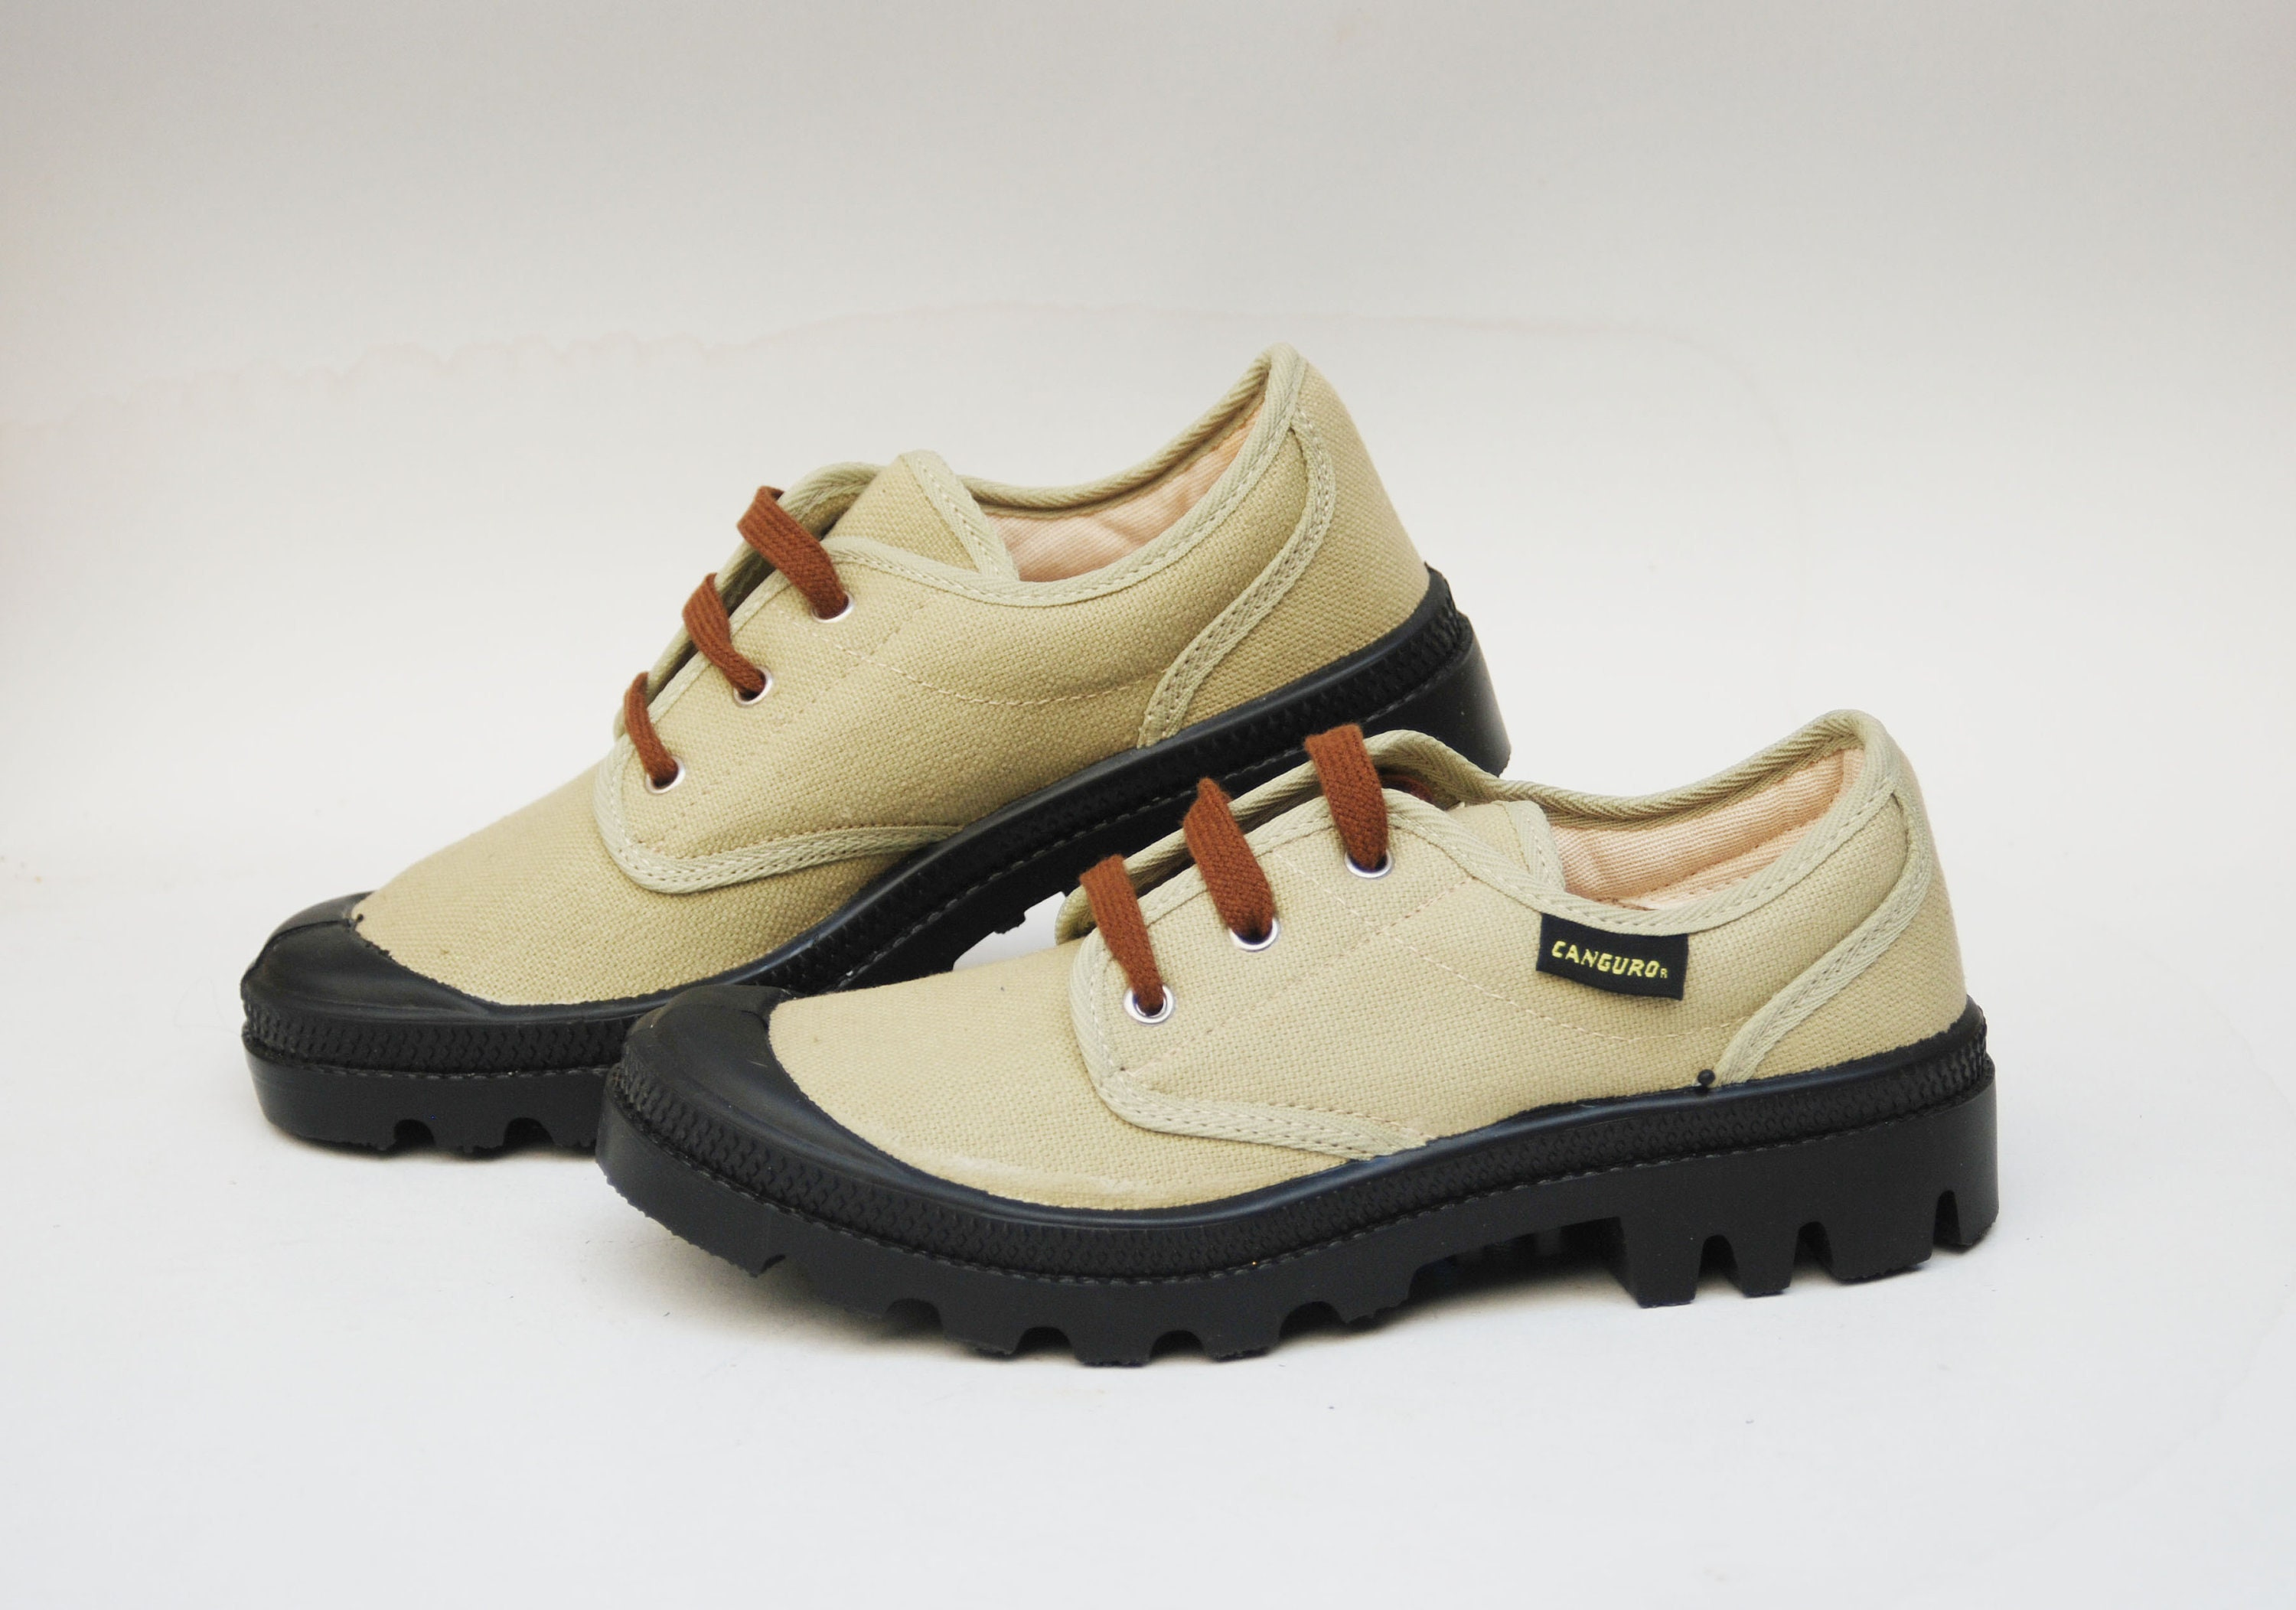 0f4dfc1caf79c low tops casual shoes shoes with heel vintage canvas shoes coachella shoes  combat sneakers Comfortable Work chunky sneakers work shoes